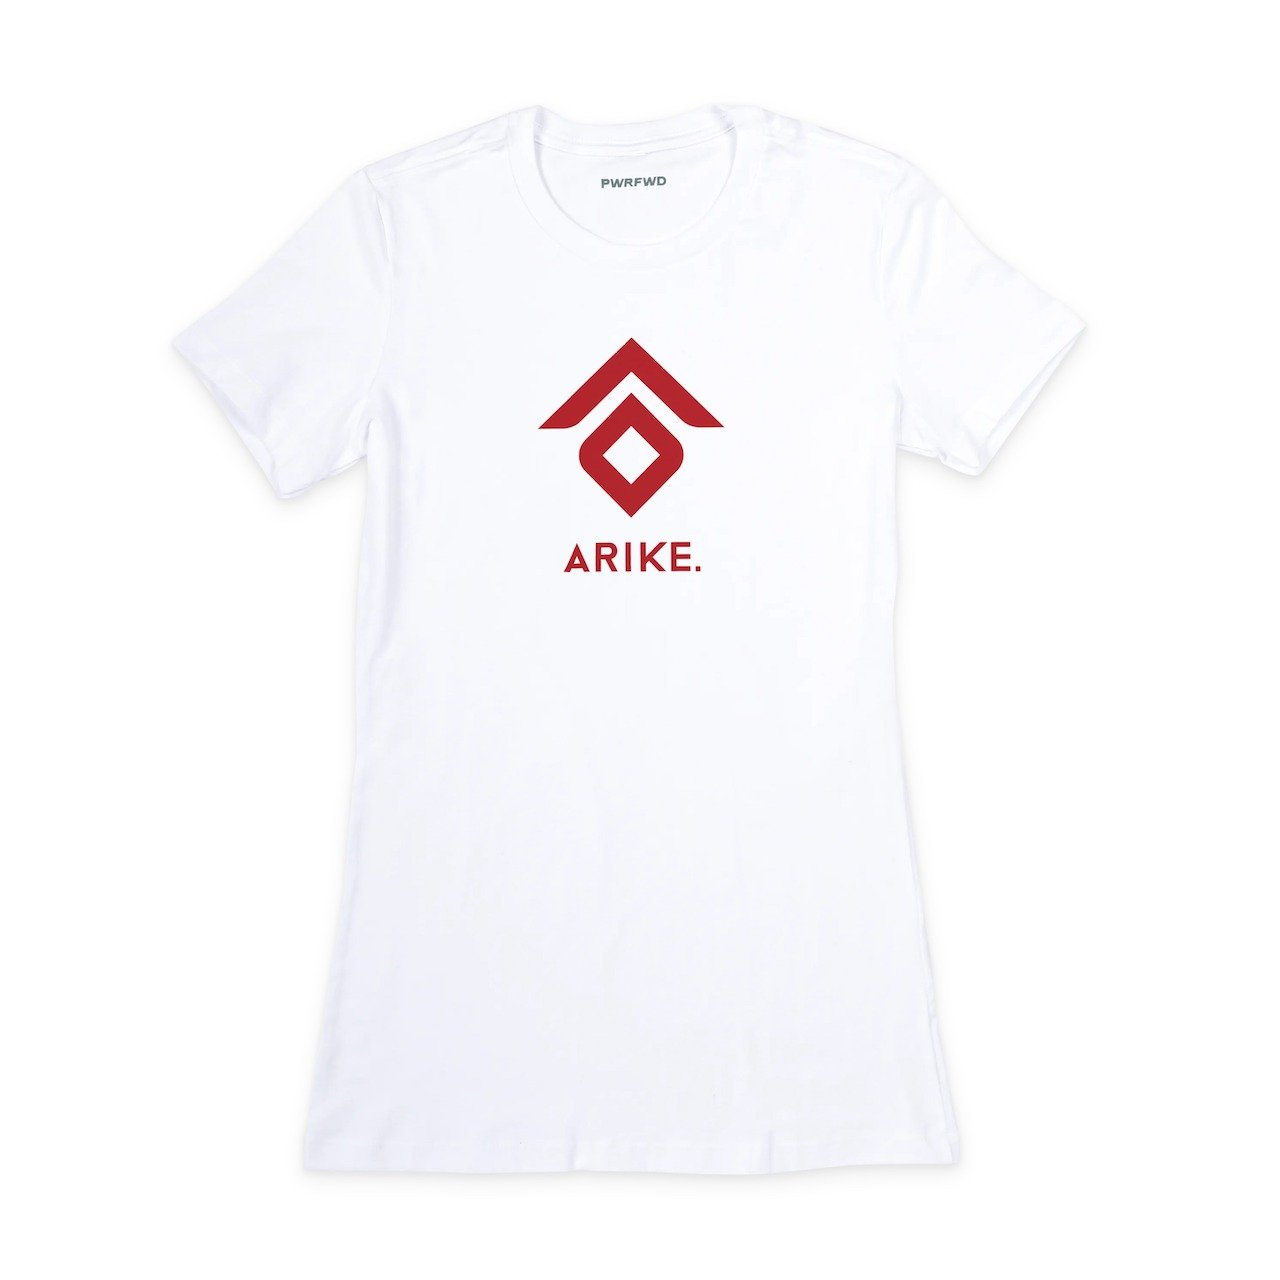 Arike Ogunbowale Fitted T-Shirt White Tee